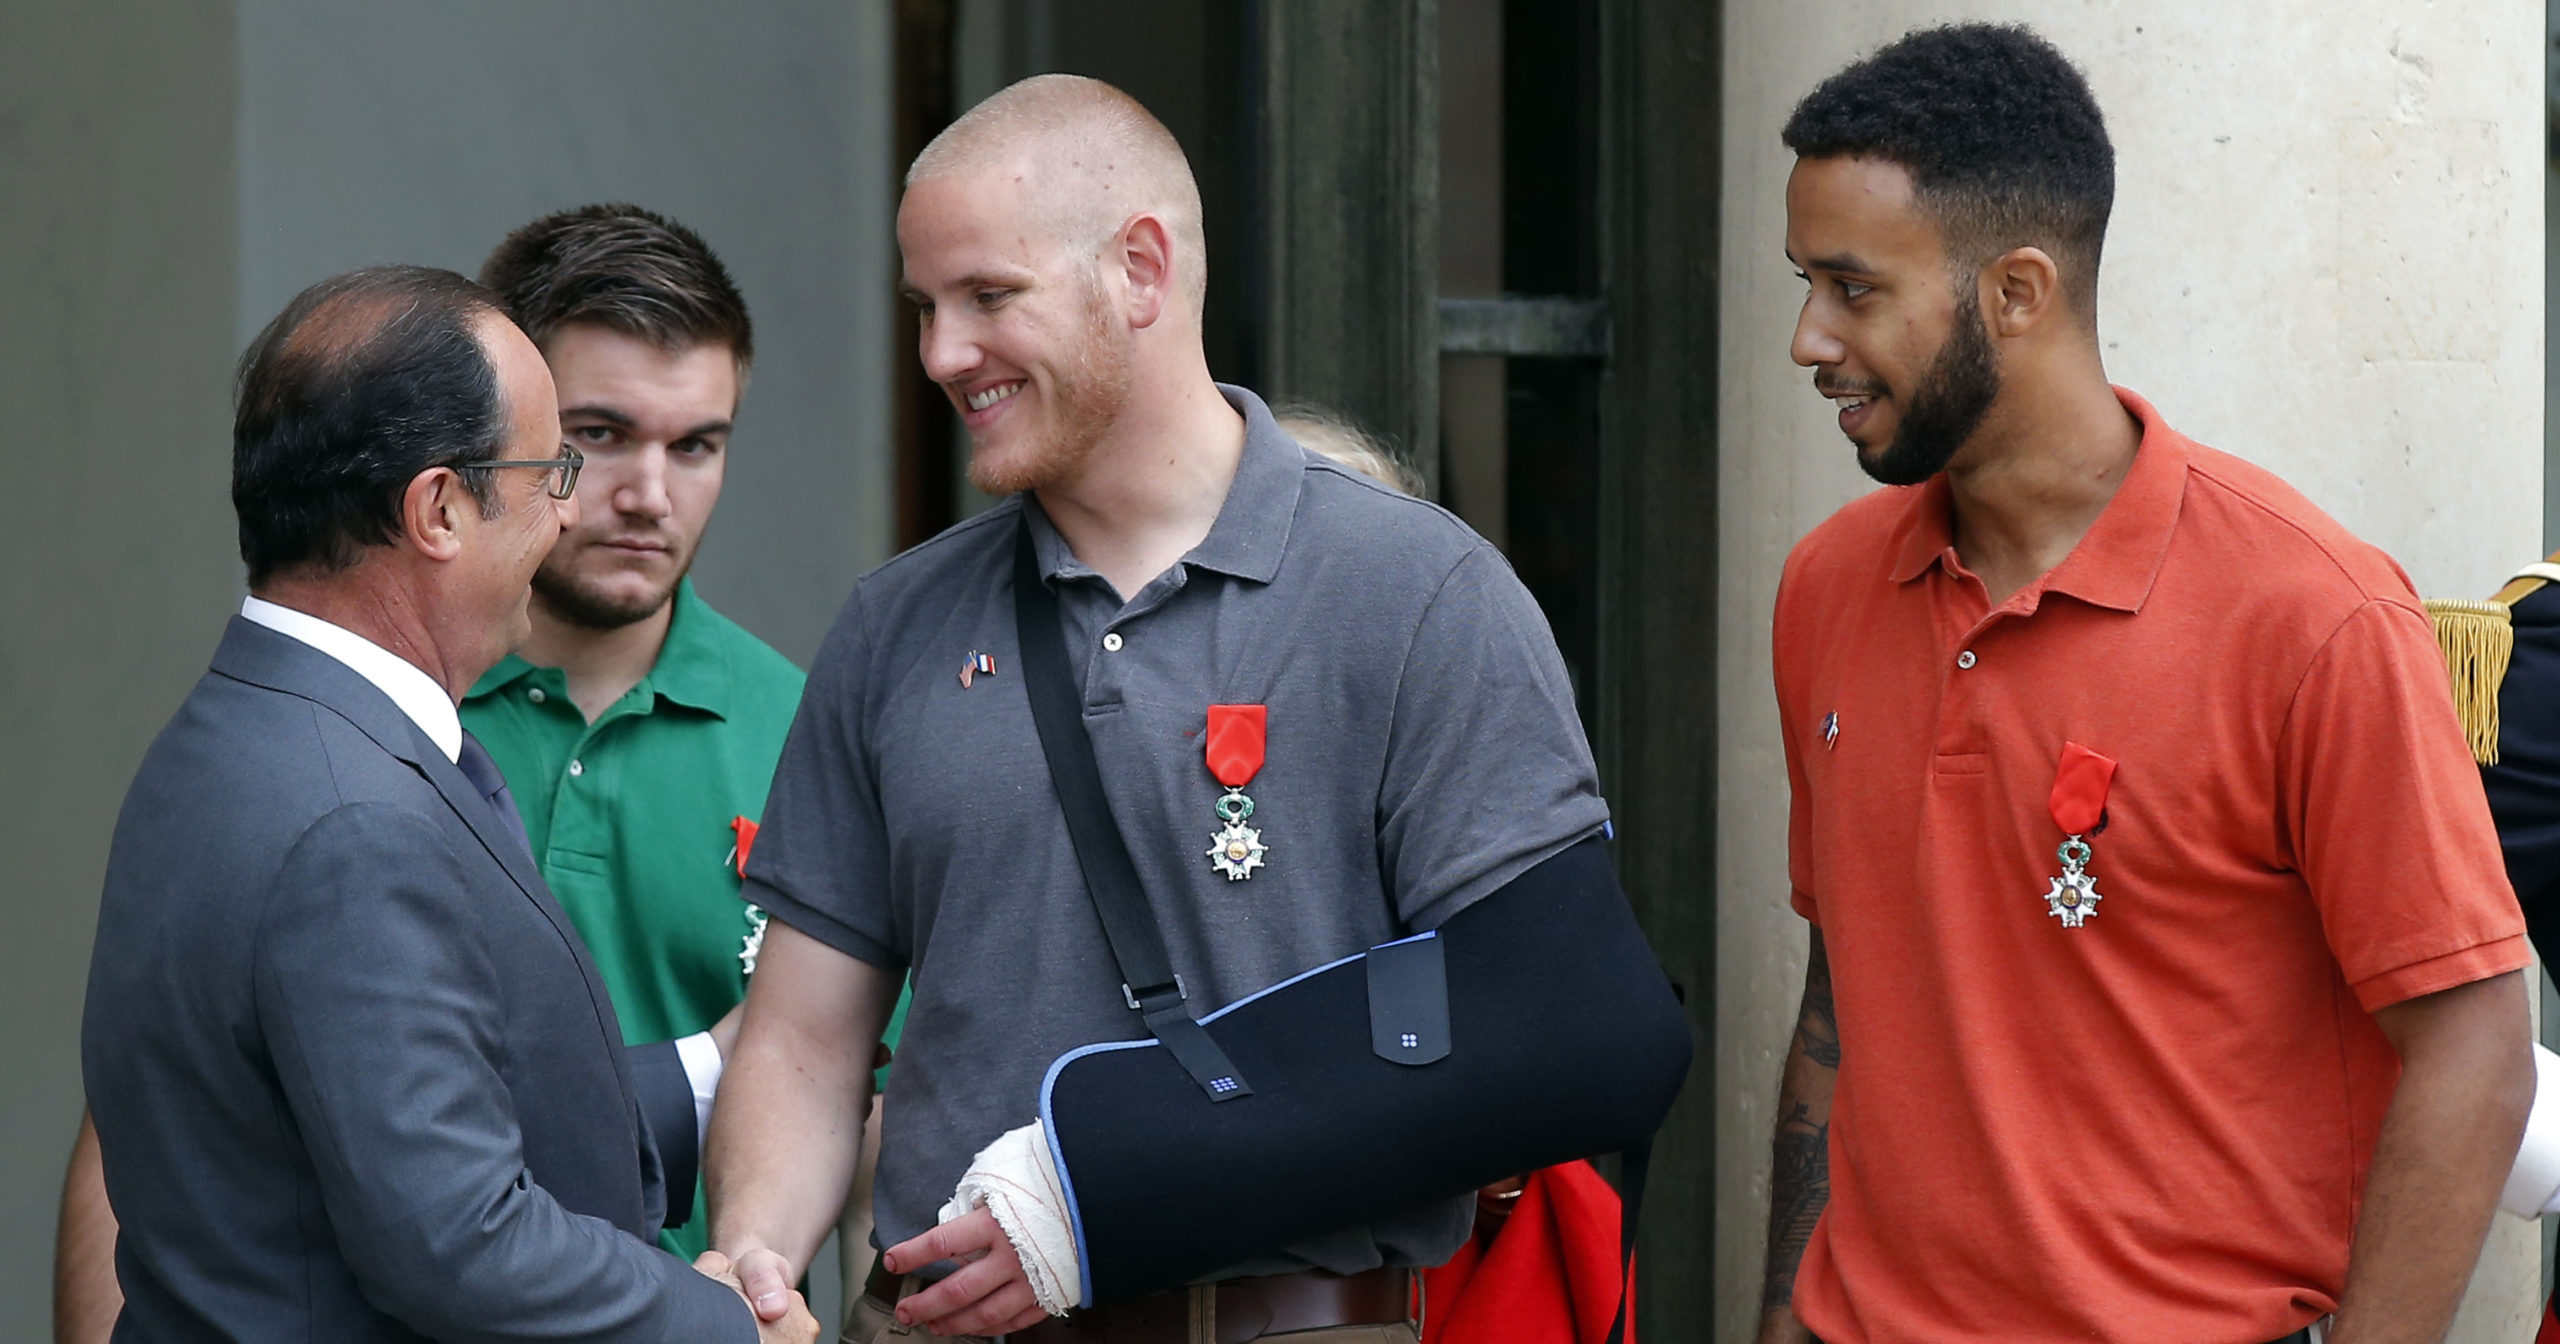 In this Aug. 24, 2015, file photo, French President Francois Hollande awards the French Legion of Honor to US Airman Spencer Stone, US National Guardsman Alek Skarlatos and Anthony Sadler, a student at Sacramento State University in California, at the Elysee Palace in Paris.